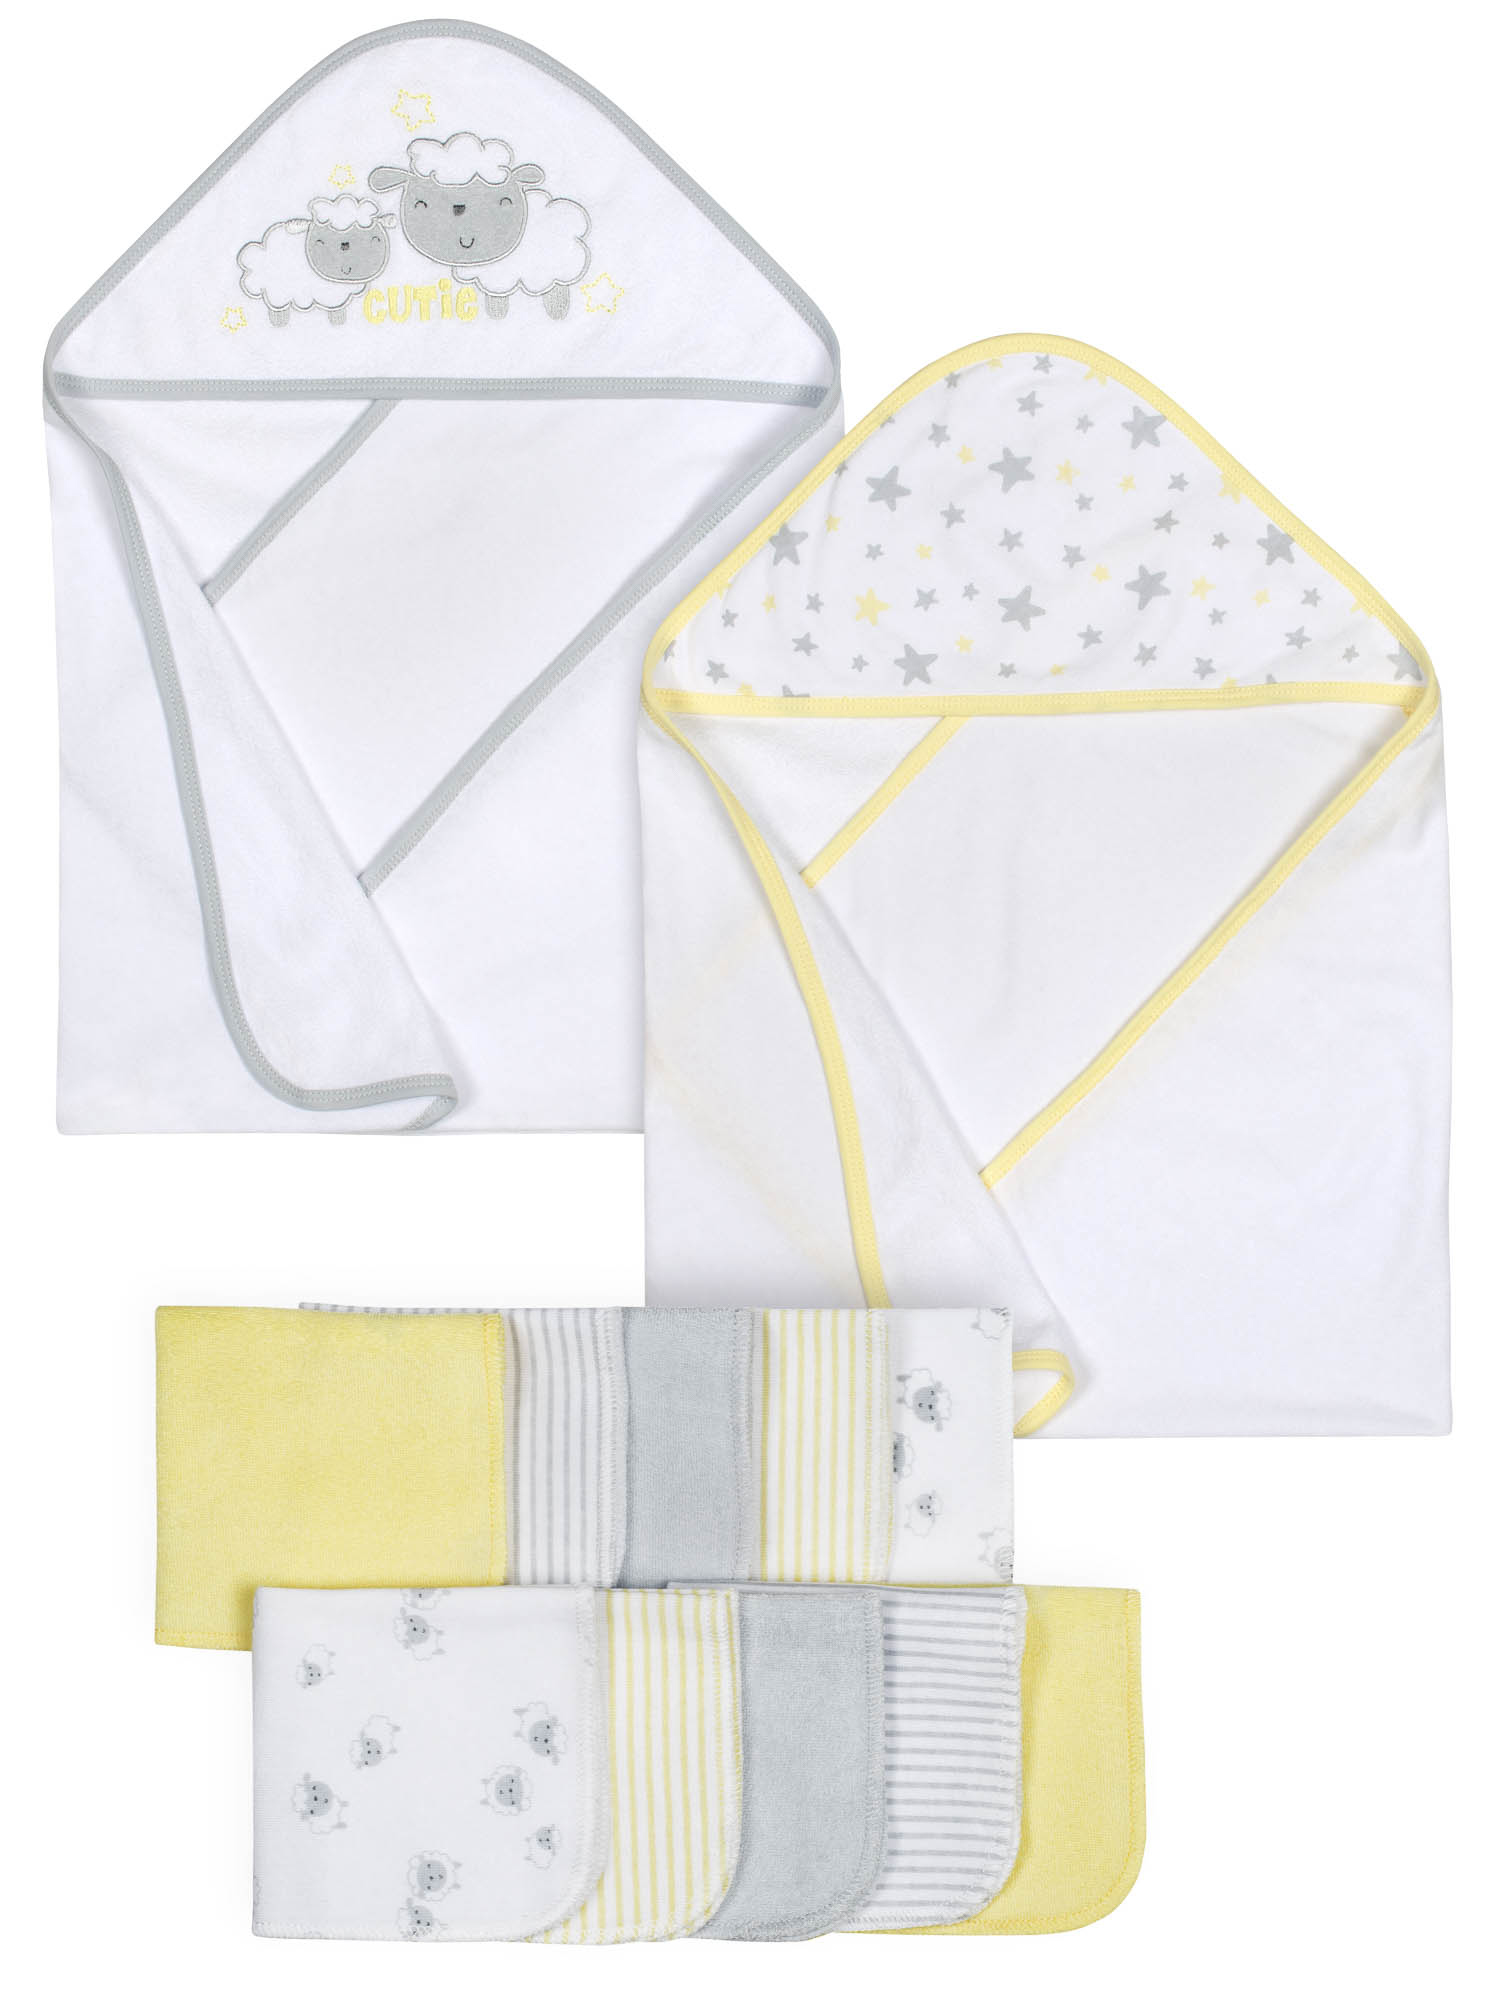 Gerber Baby Hooded Towels & Washcloth Set, 12pc by Gerber